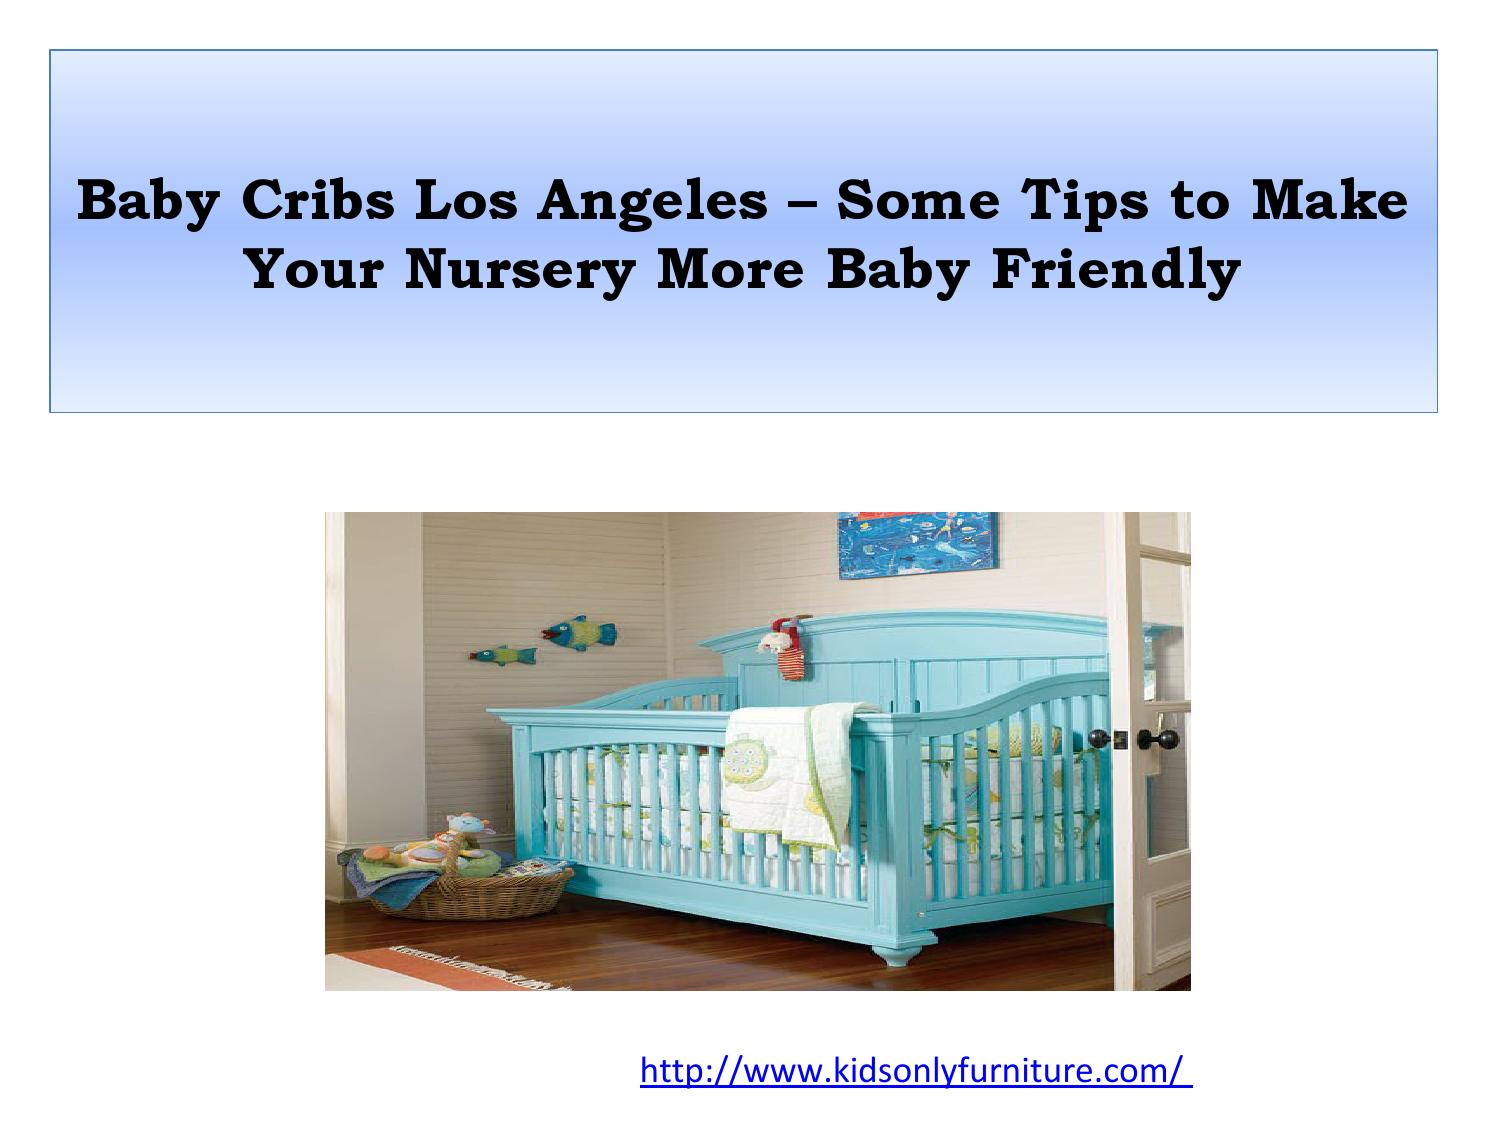 Ashley Furniture Baby Cribs How To Shop Baby Furniture Cribs Angeles Baby Cribs Absolutely